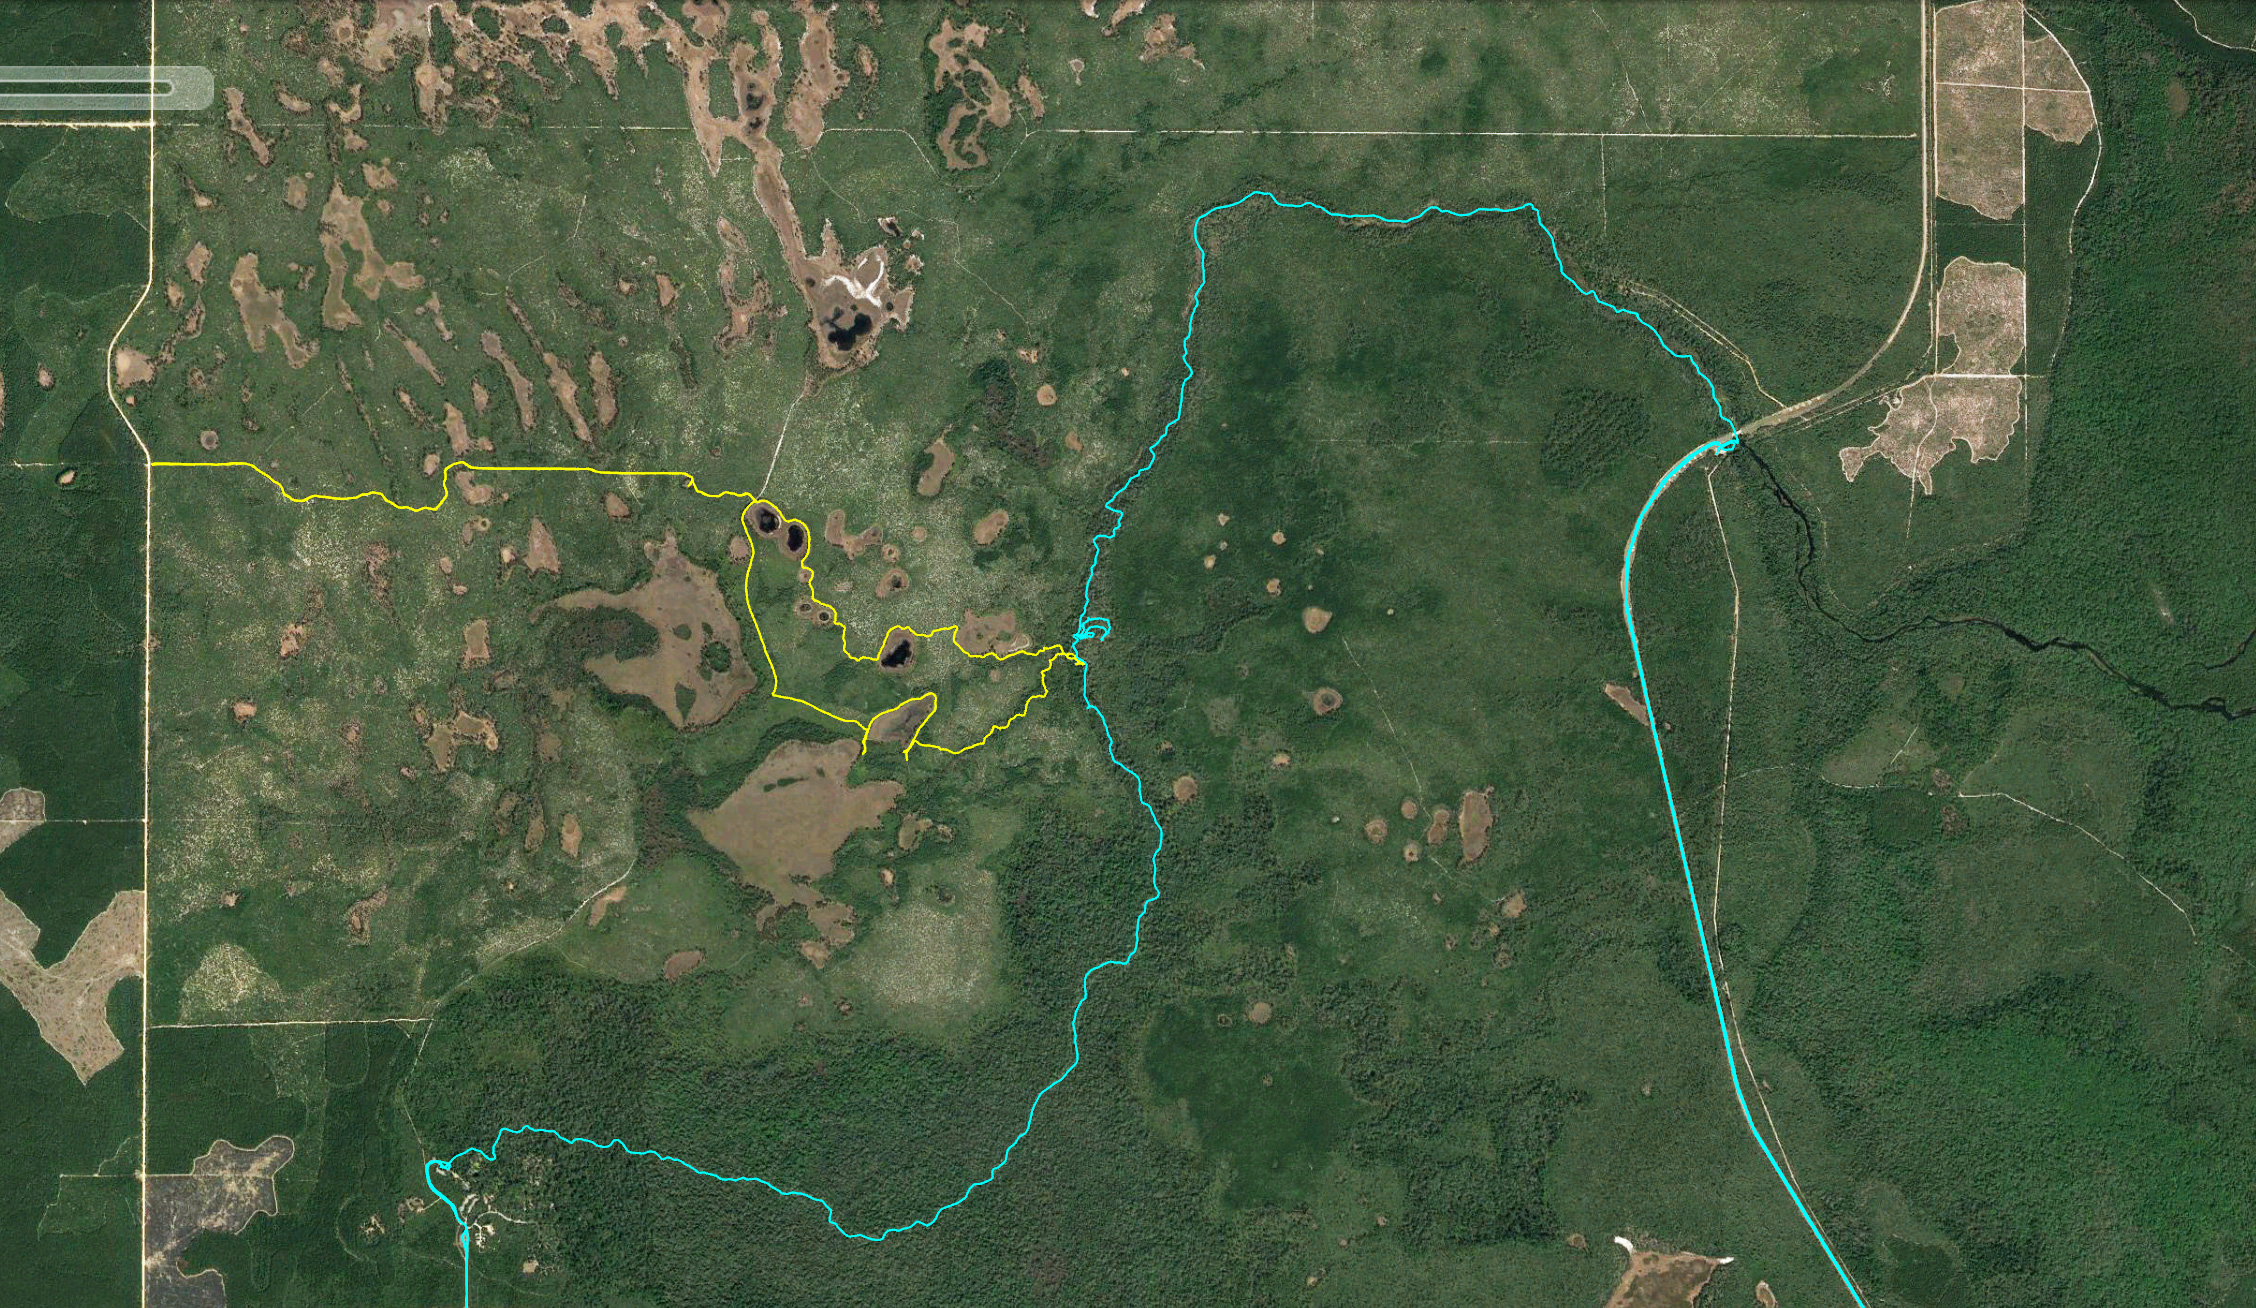 Here is a Google Earth screenshot of our two trips, which I recorded with my Garmin. The blue path is from our kayaking scouting trip. The yellow path is from mine and Alex's most recent trip where we navigated to the river via land.